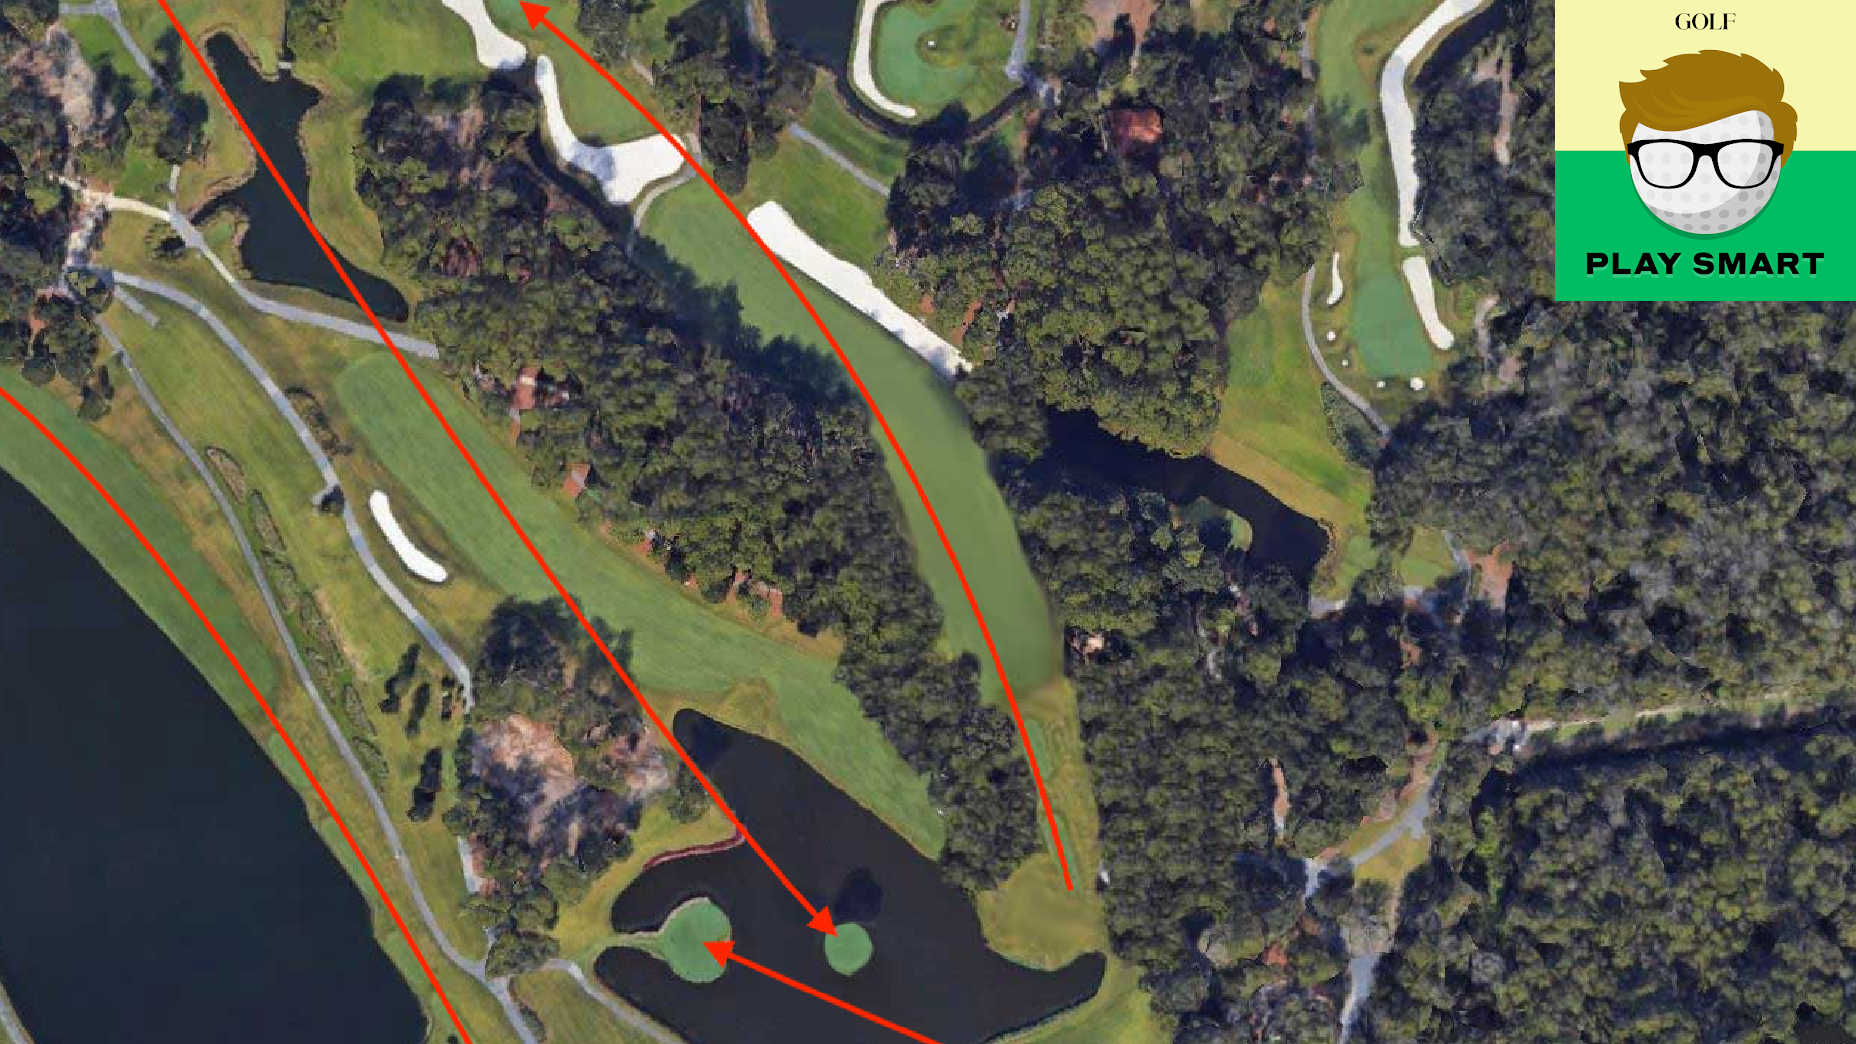 Here's my ridiculous idea to redesign TPC Sawgrass' closing stretch